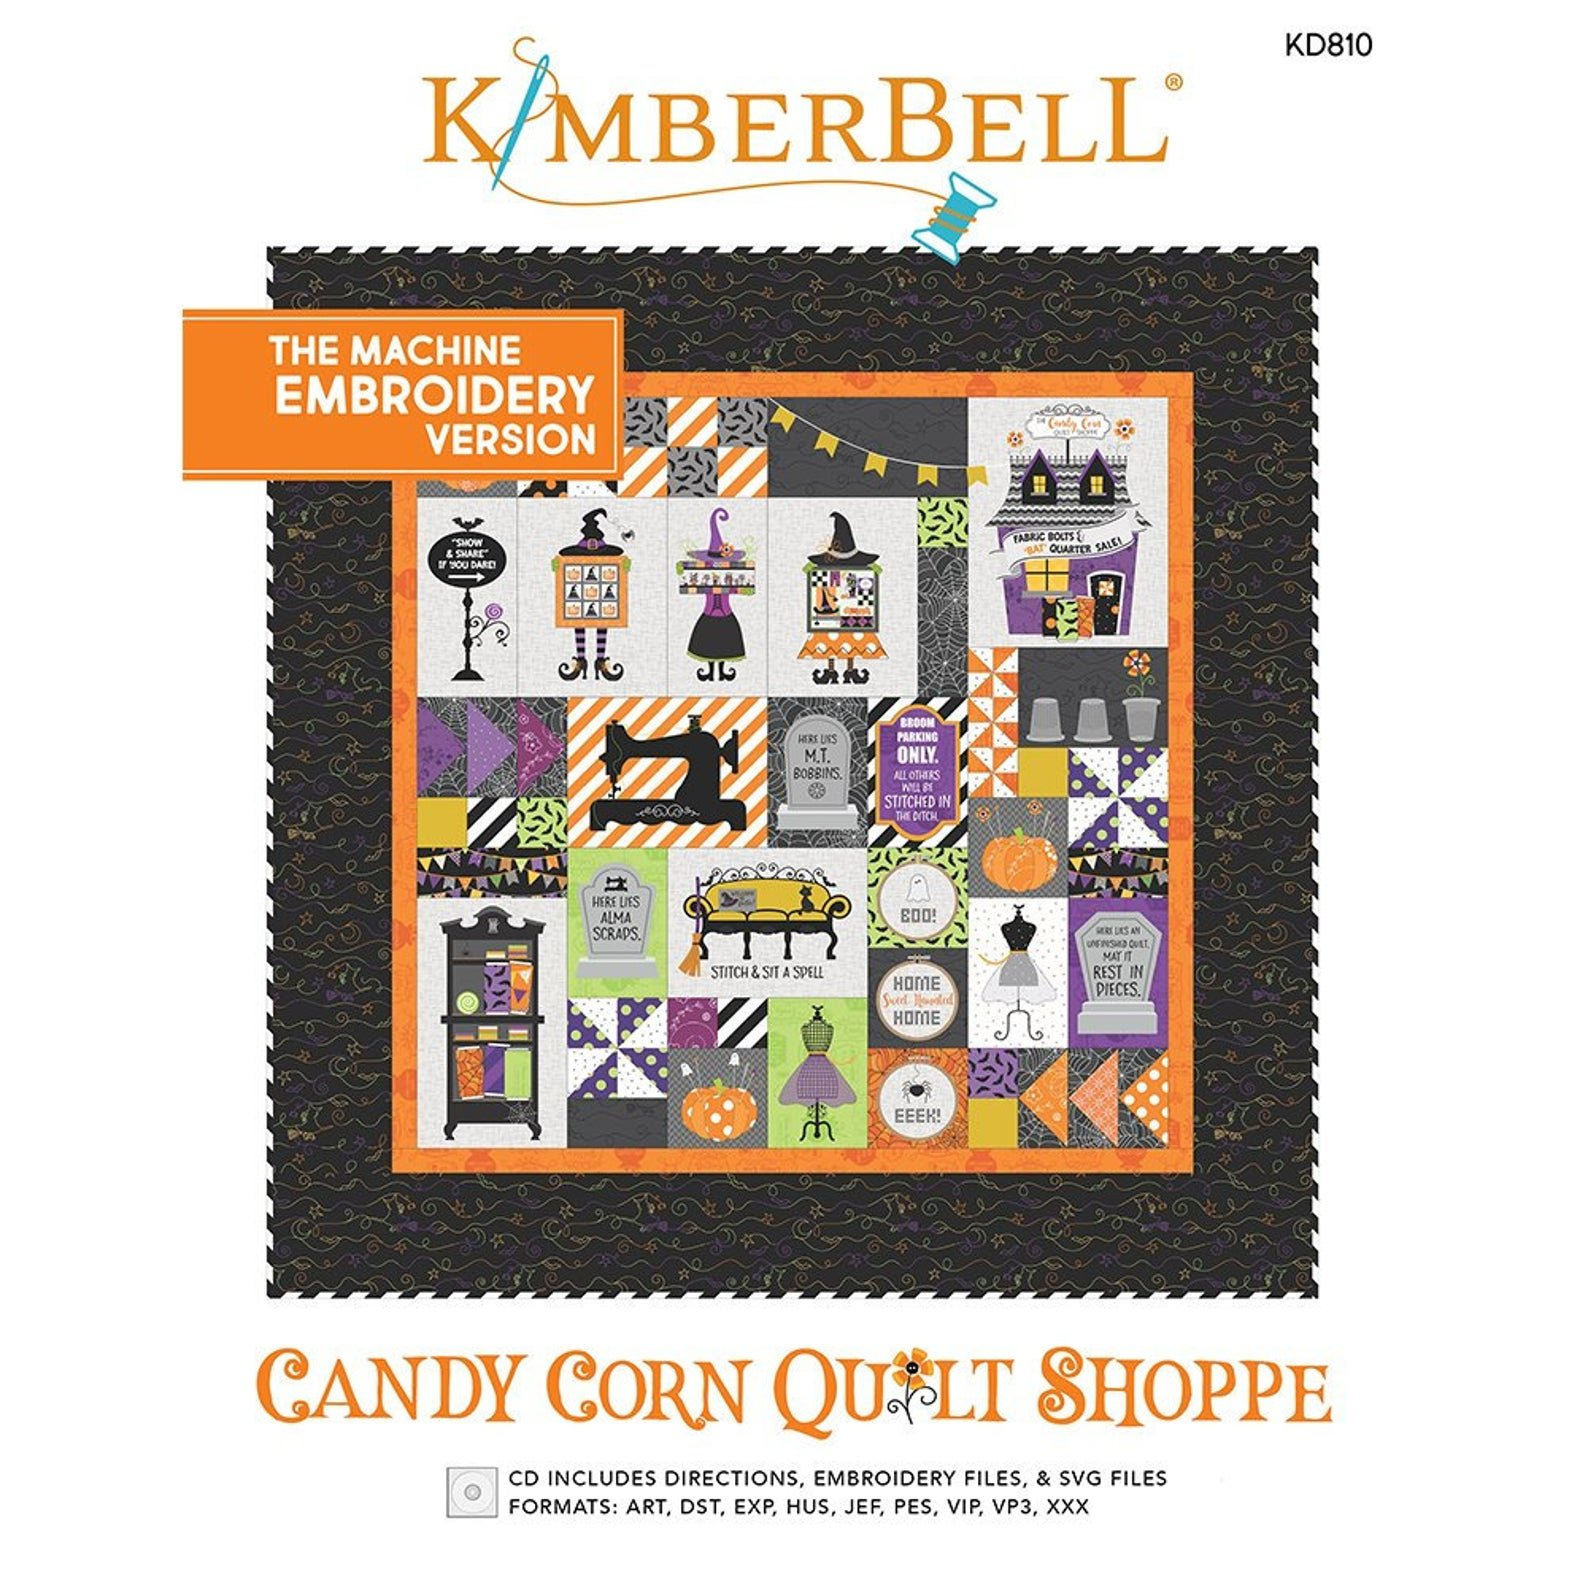 Kimberbell Candy Corn Quilt Shoppe Machine Embroidery Book & CD